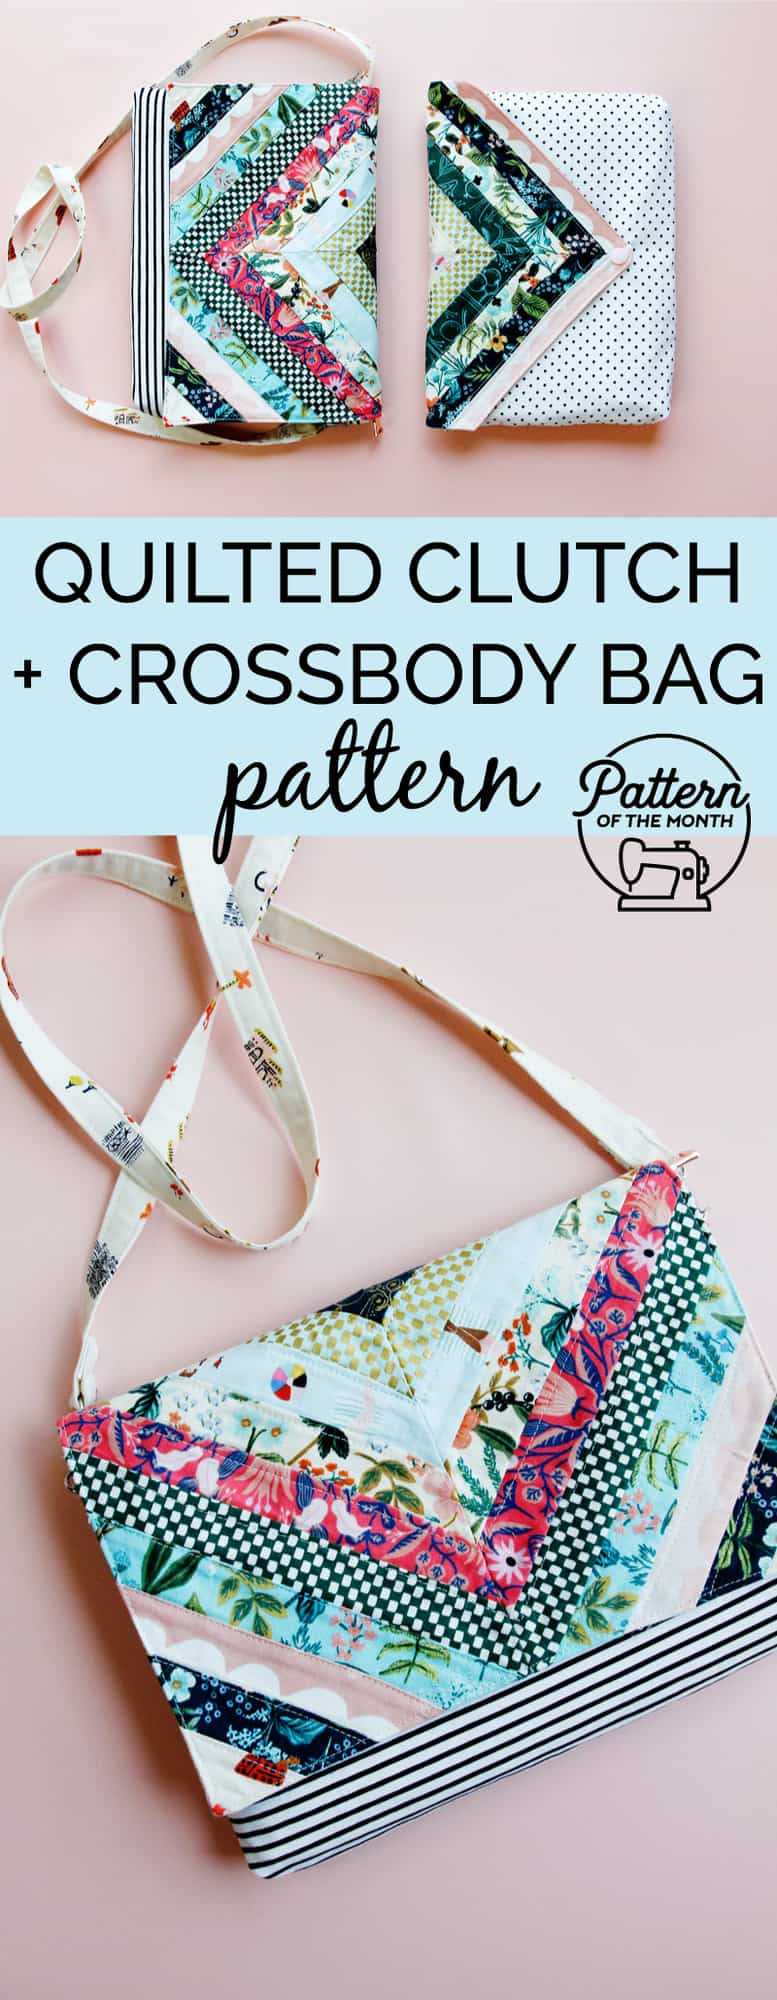 Quilted Clutch and Crossbody Bag Pattern | Pattern of the Month